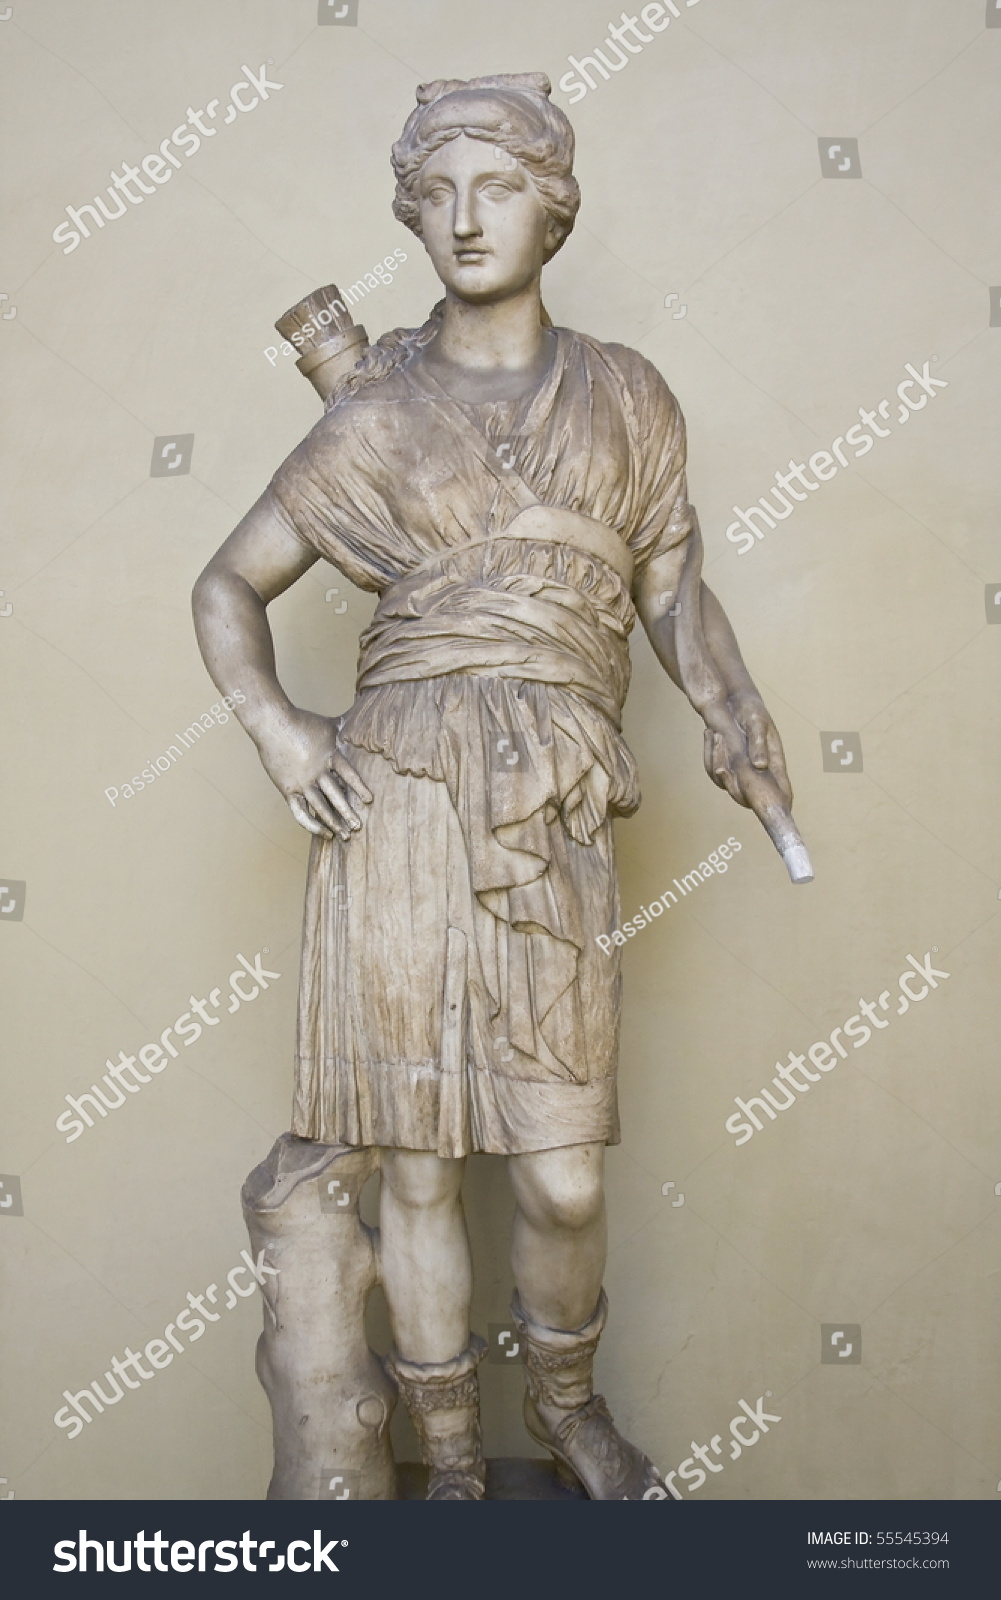 artemis goddess of the hunt History of character has not yet been written notes this character is an adaptation of artemis, a character in traditional stories these include, but may not be.